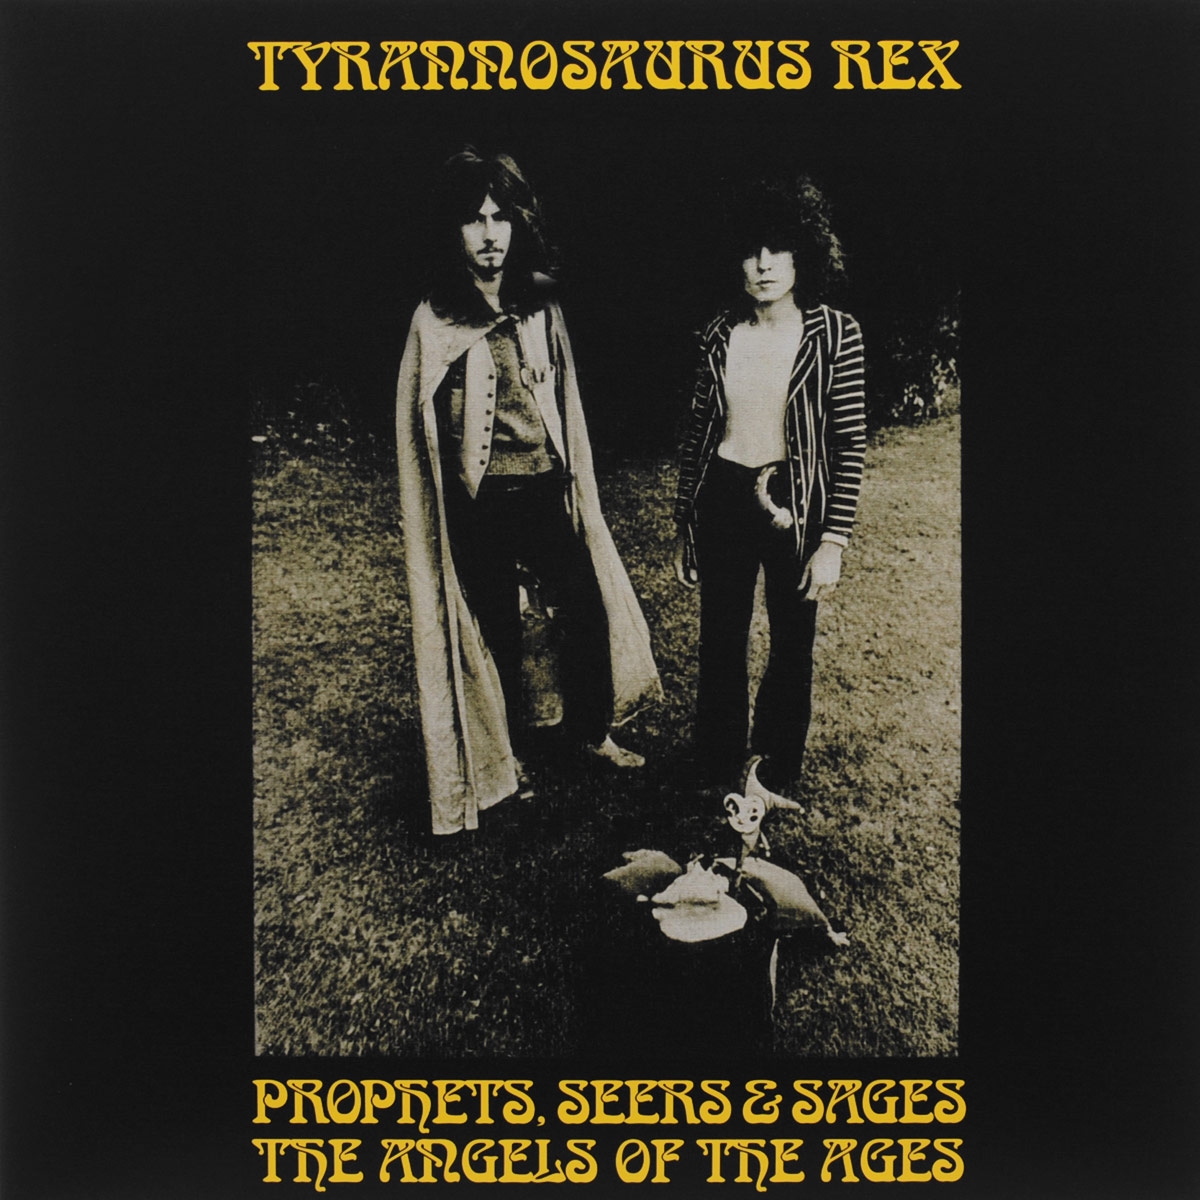 Tyrannosaurus Rex Tyrannosaurus Rex. Prophets, Seers & Sages. The Angels Of The Ages (2 LP) tyrannosaurus rex tyrannosaurus rex my people were fair